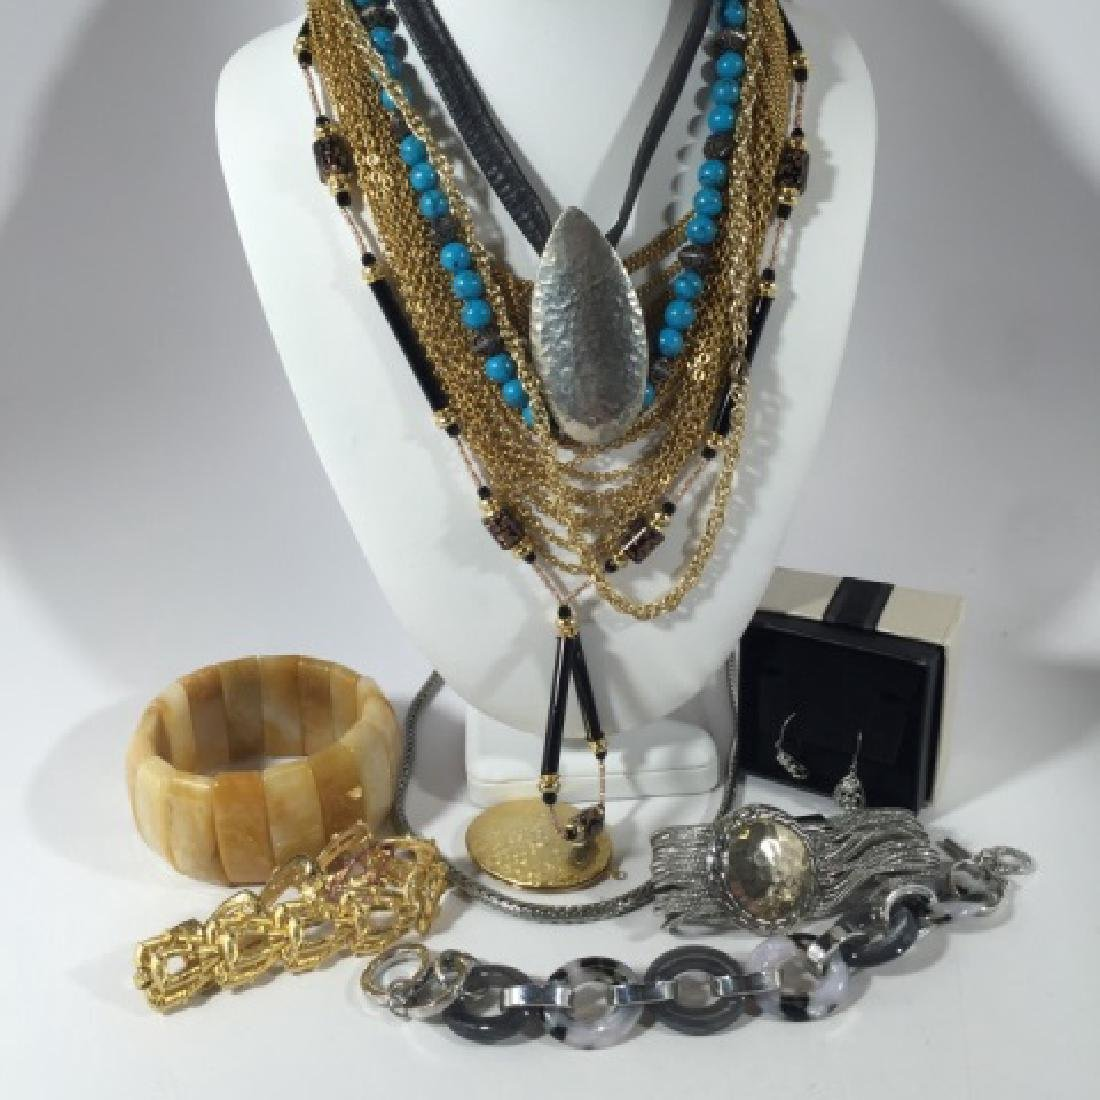 Collection of Vintage & New Costume Jewelry Pieces